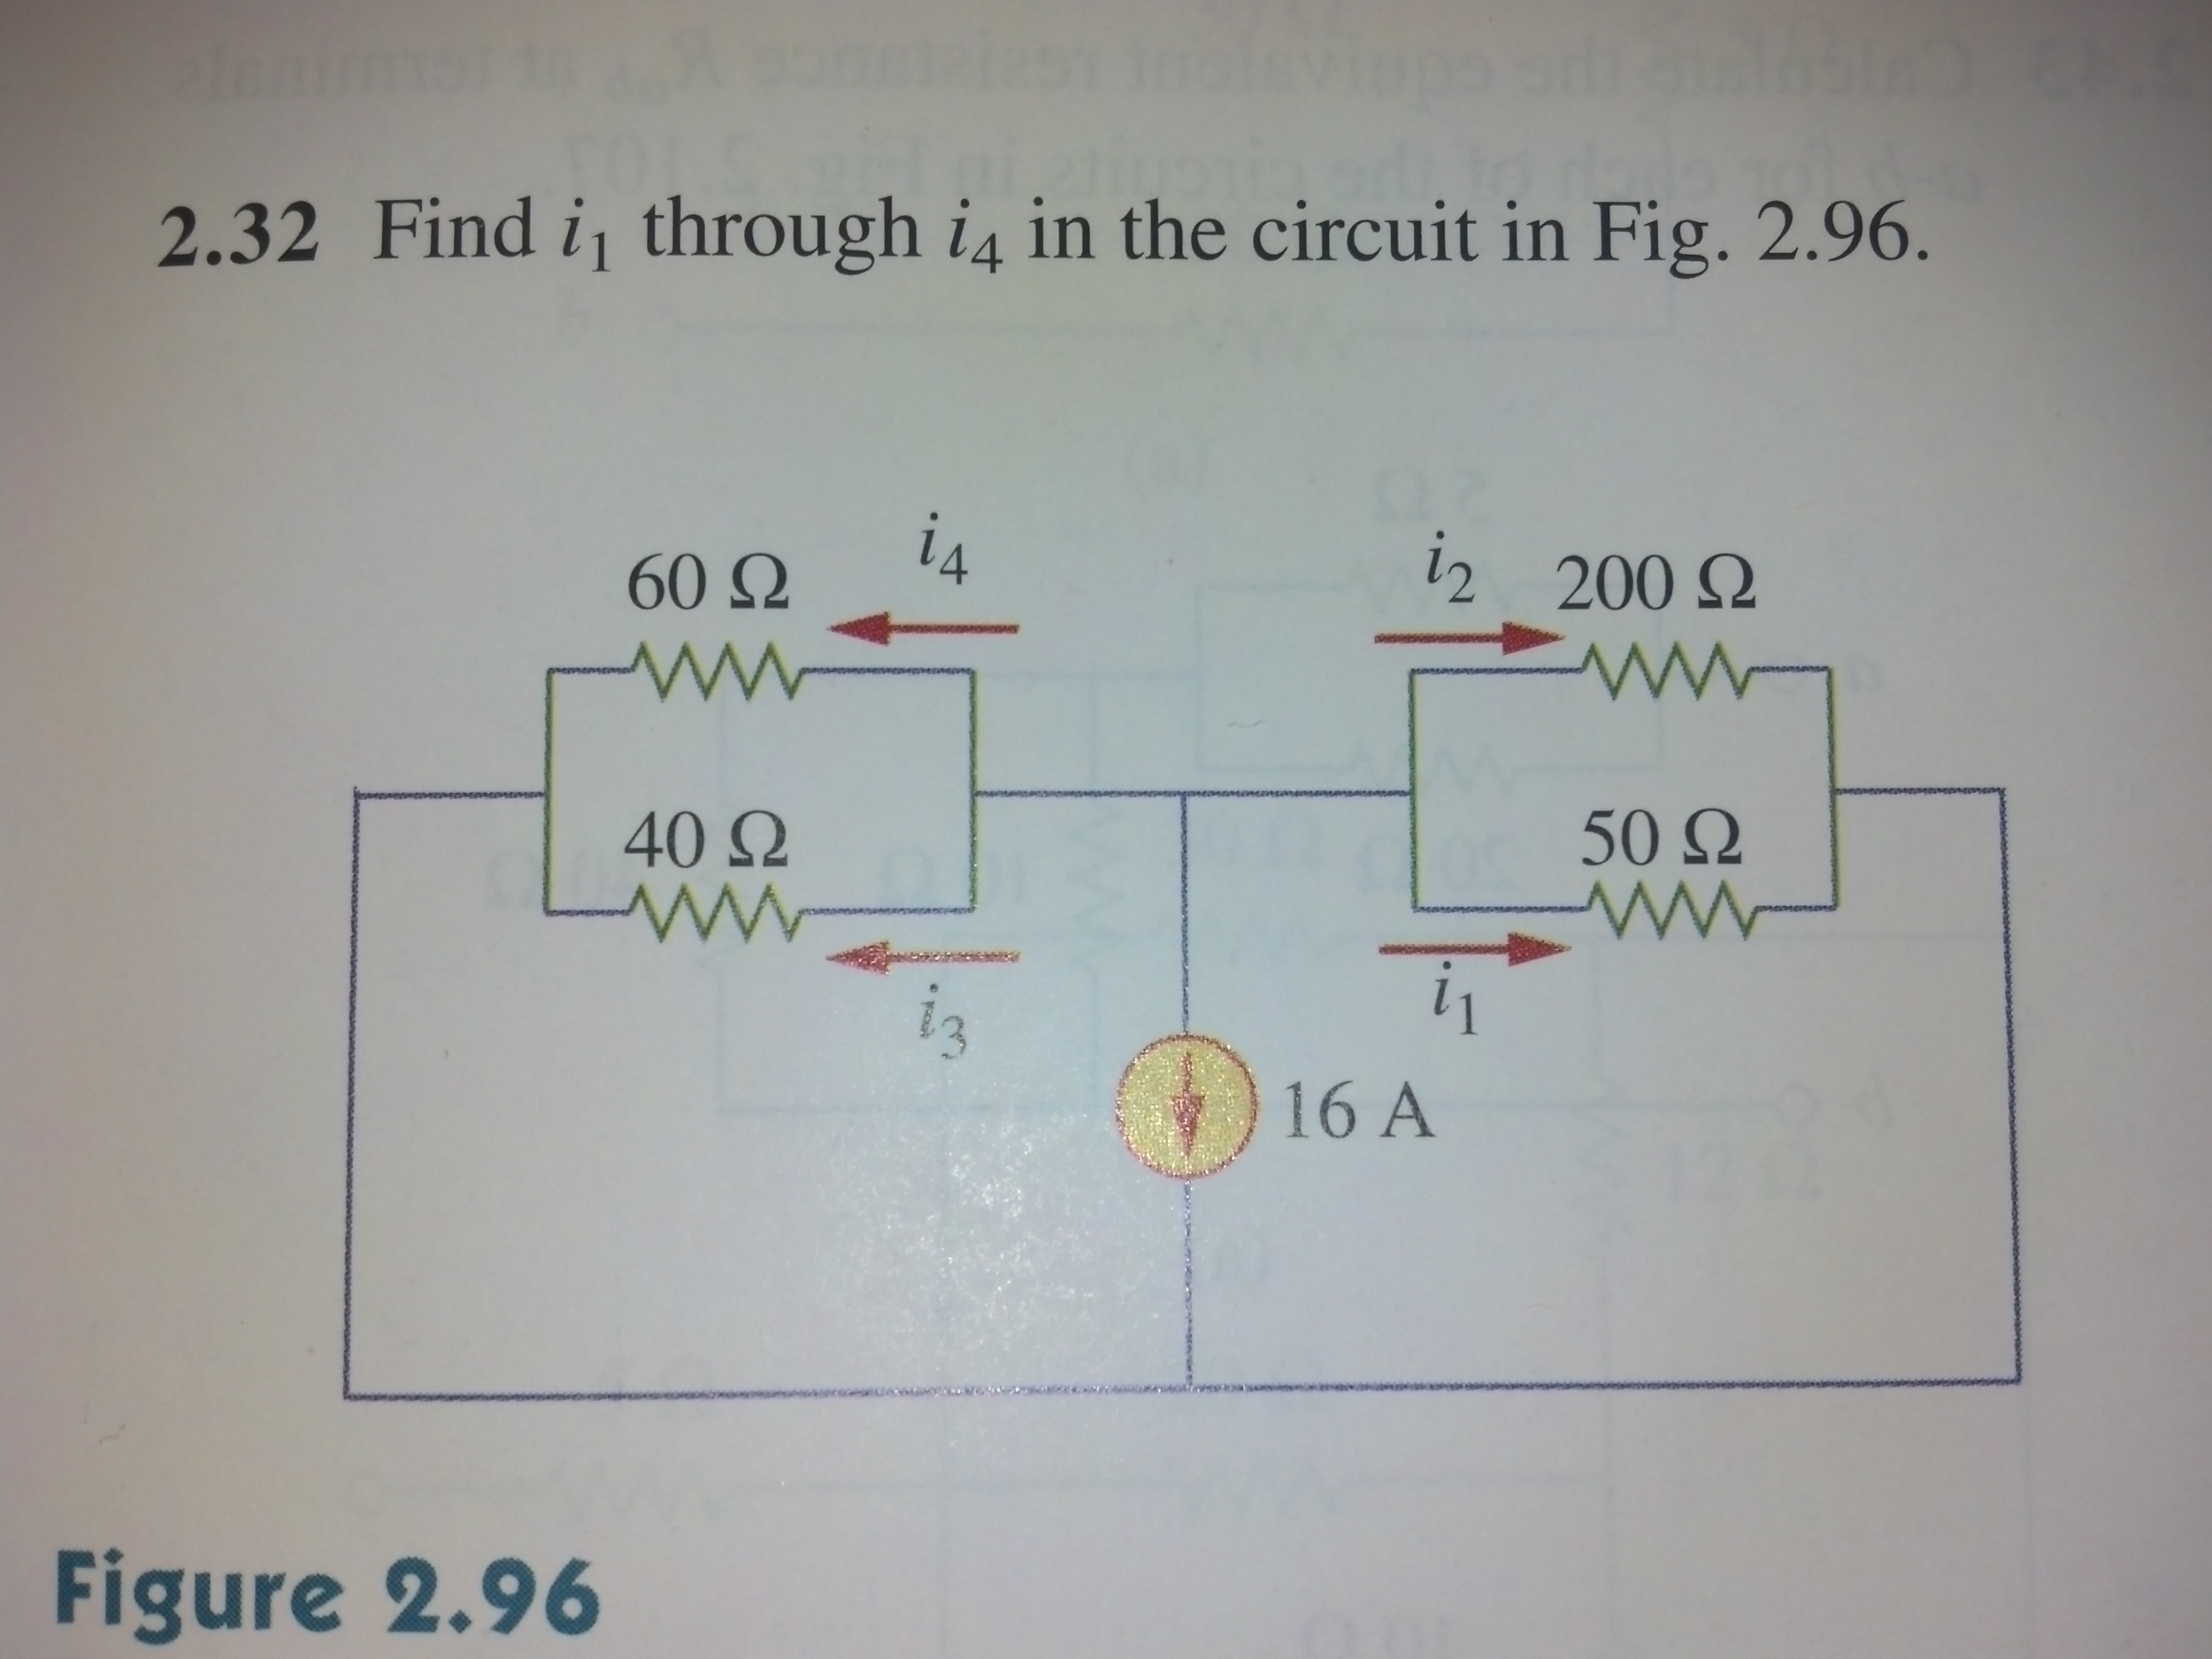 Find ix through i4 in the circuit in Fig. 2.96.